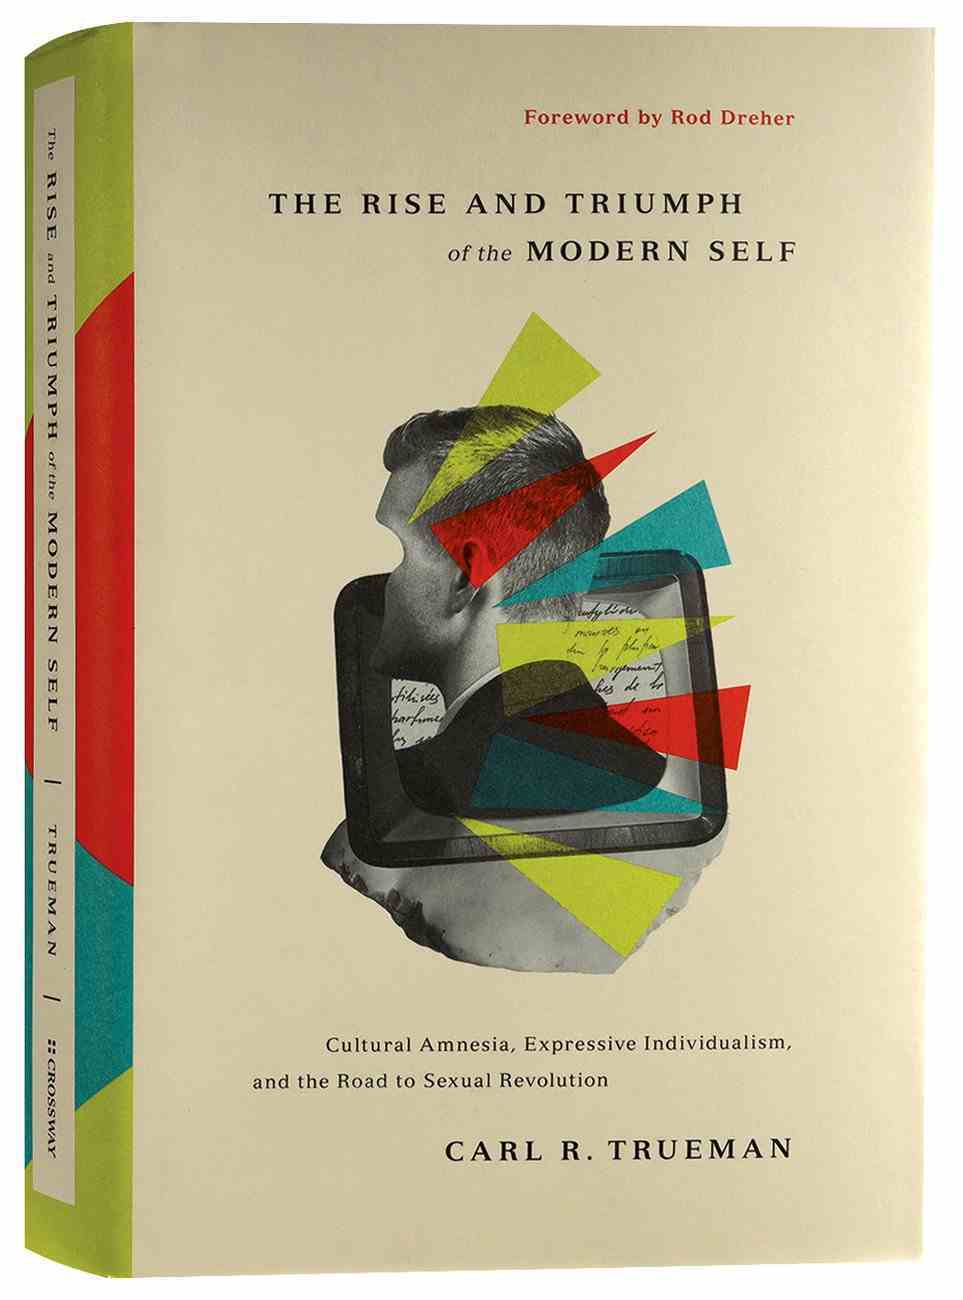 The Rise and Triumph of the Modern Self: Cultural Amnesia, Expressive Individualism, and the Road to Sexual Revolution Hardback